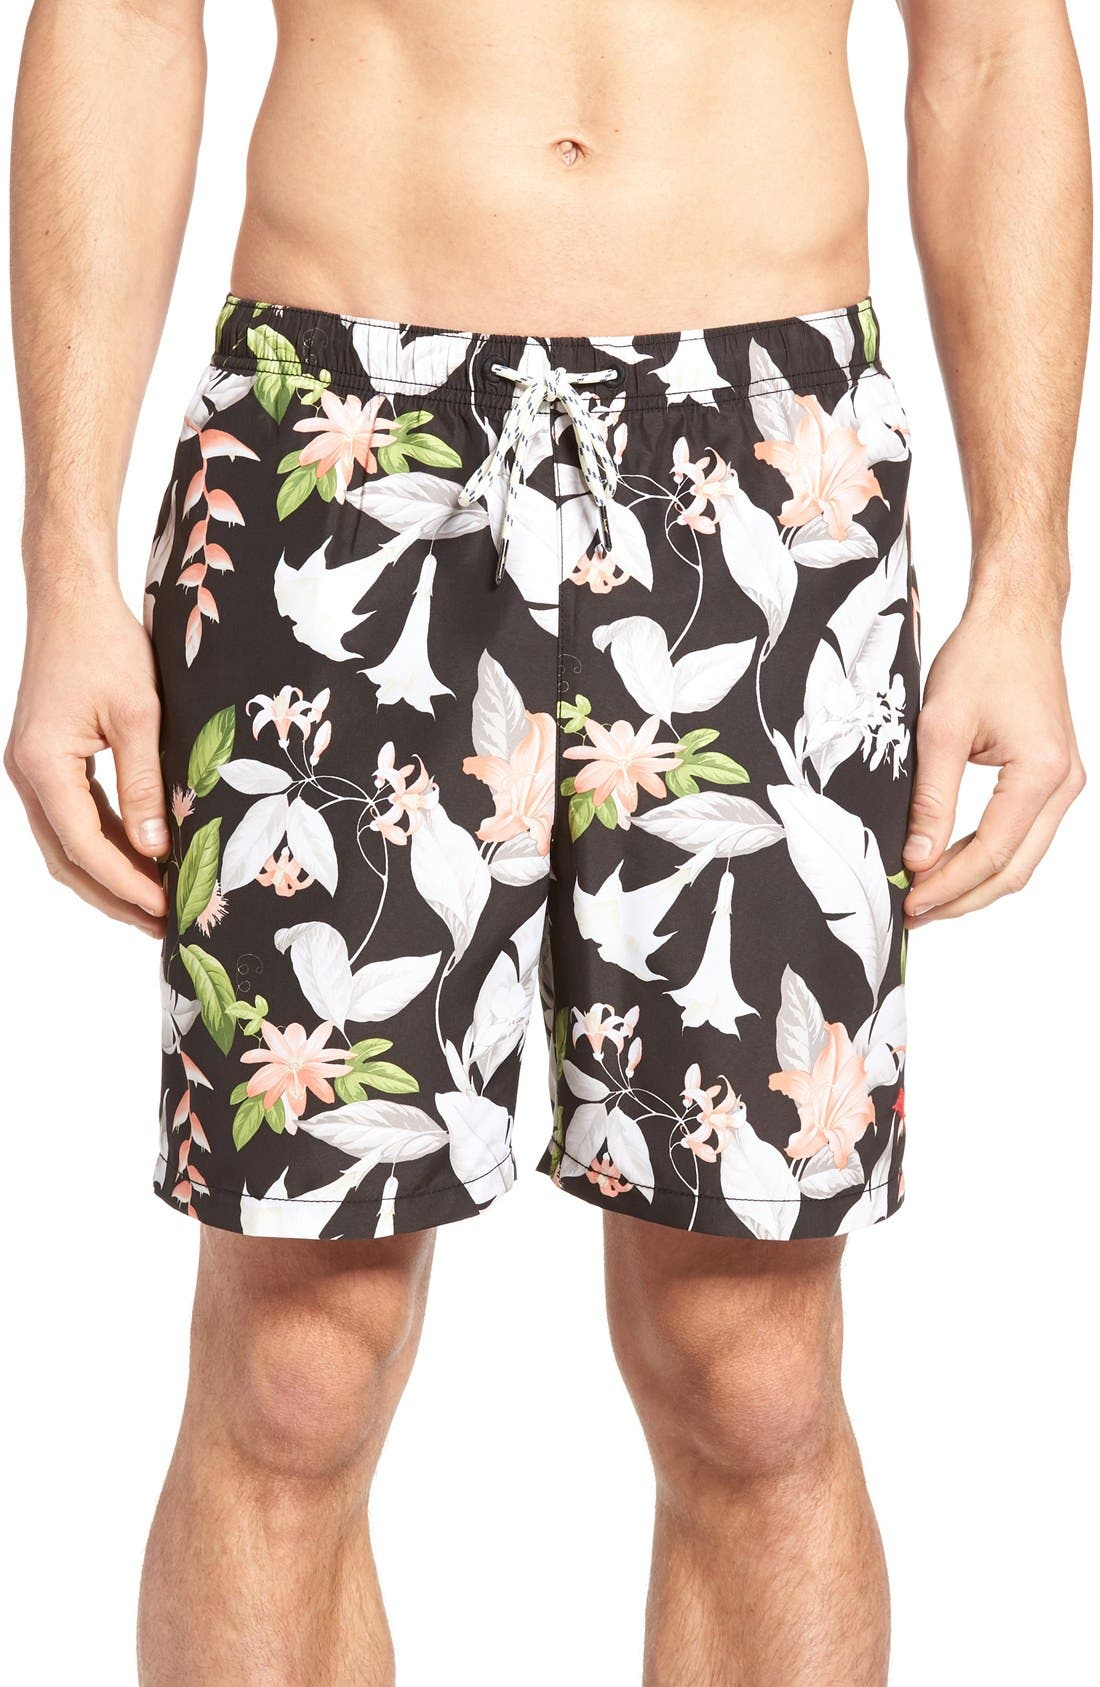 Naples Brego Blooms Swim Trunks,                             Main thumbnail 1, color,                             Jet Black